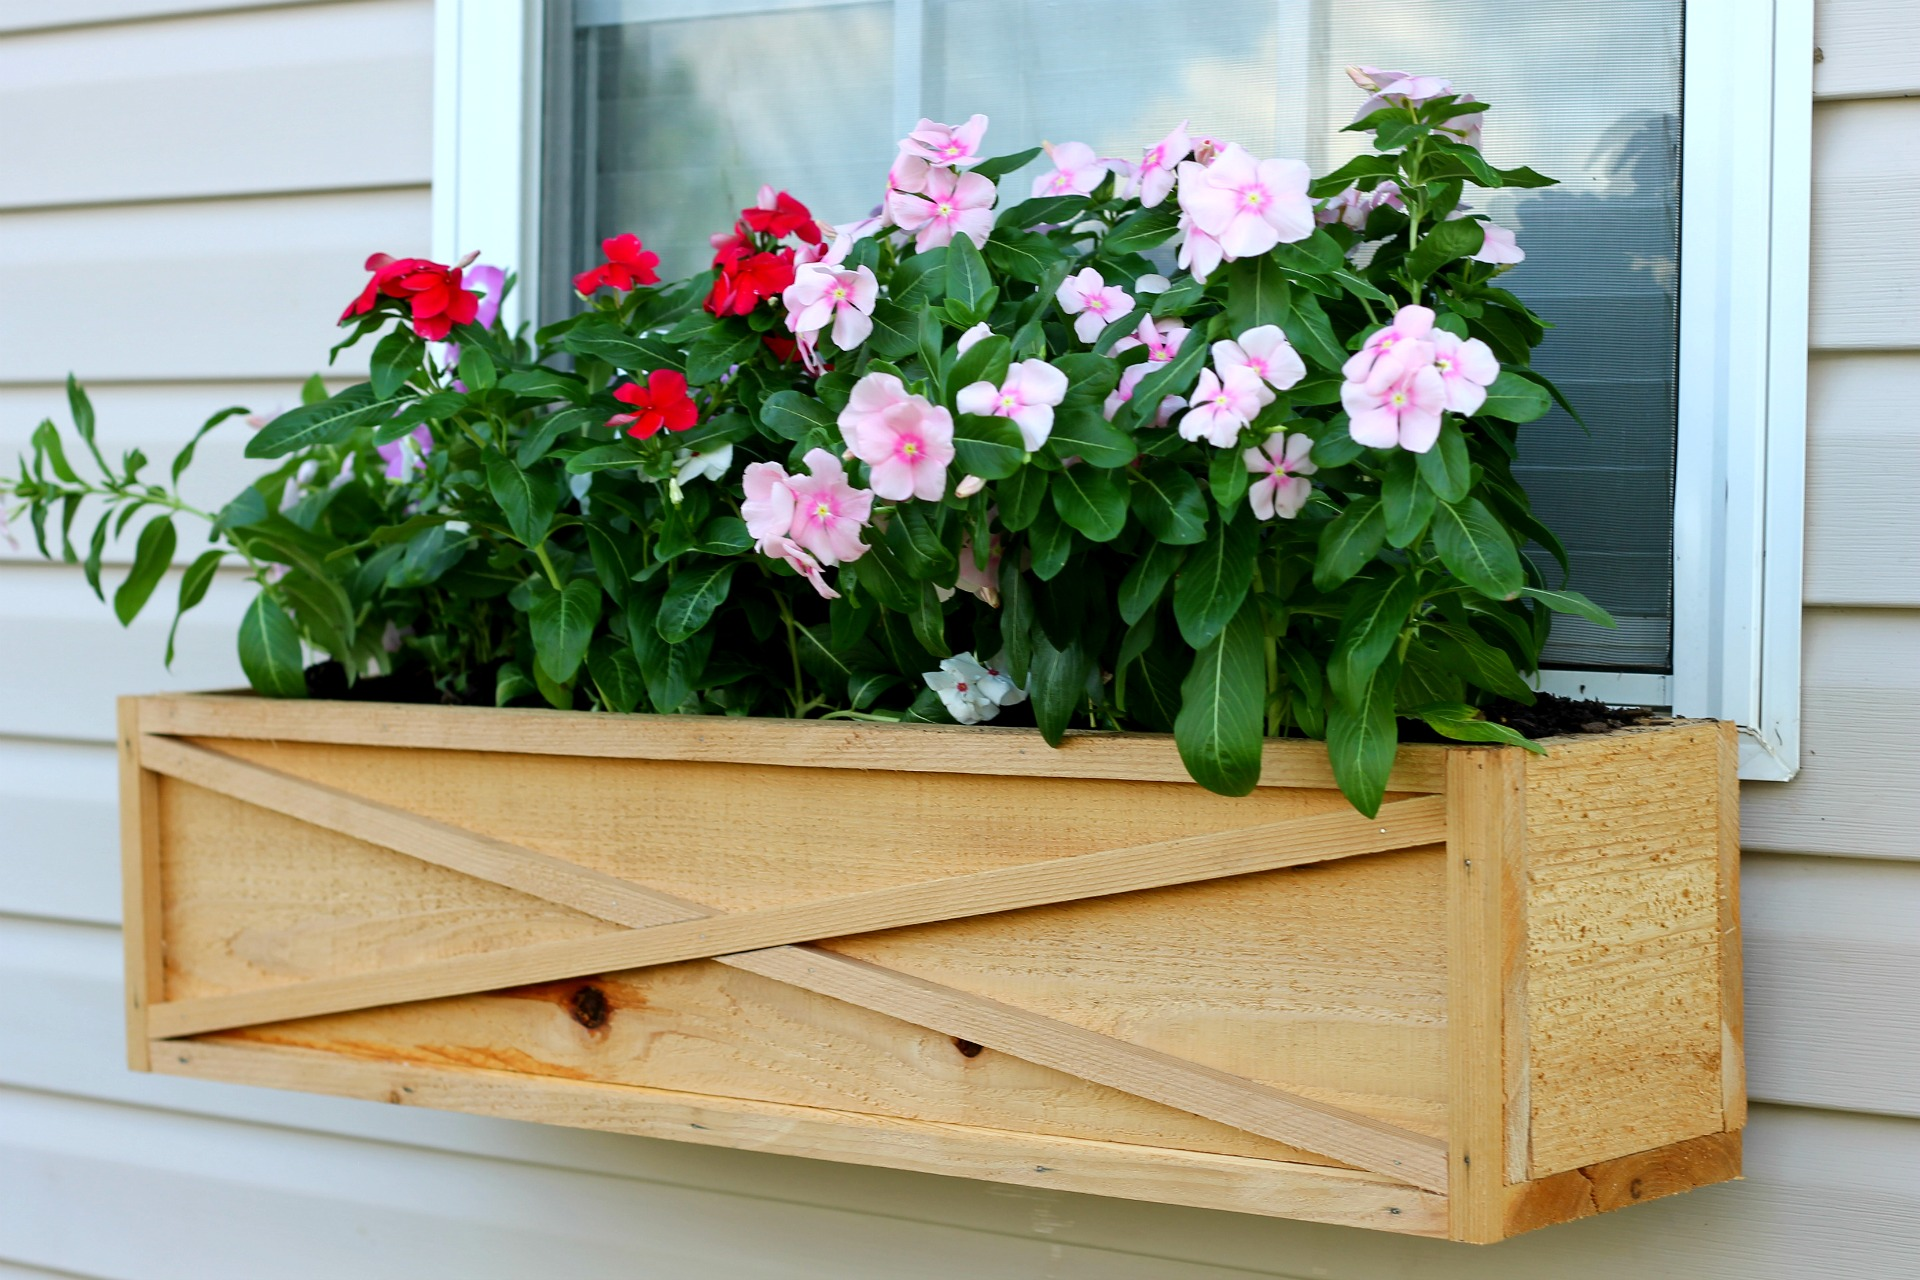 Using Cedar Wood To Build A Widow Box Planter